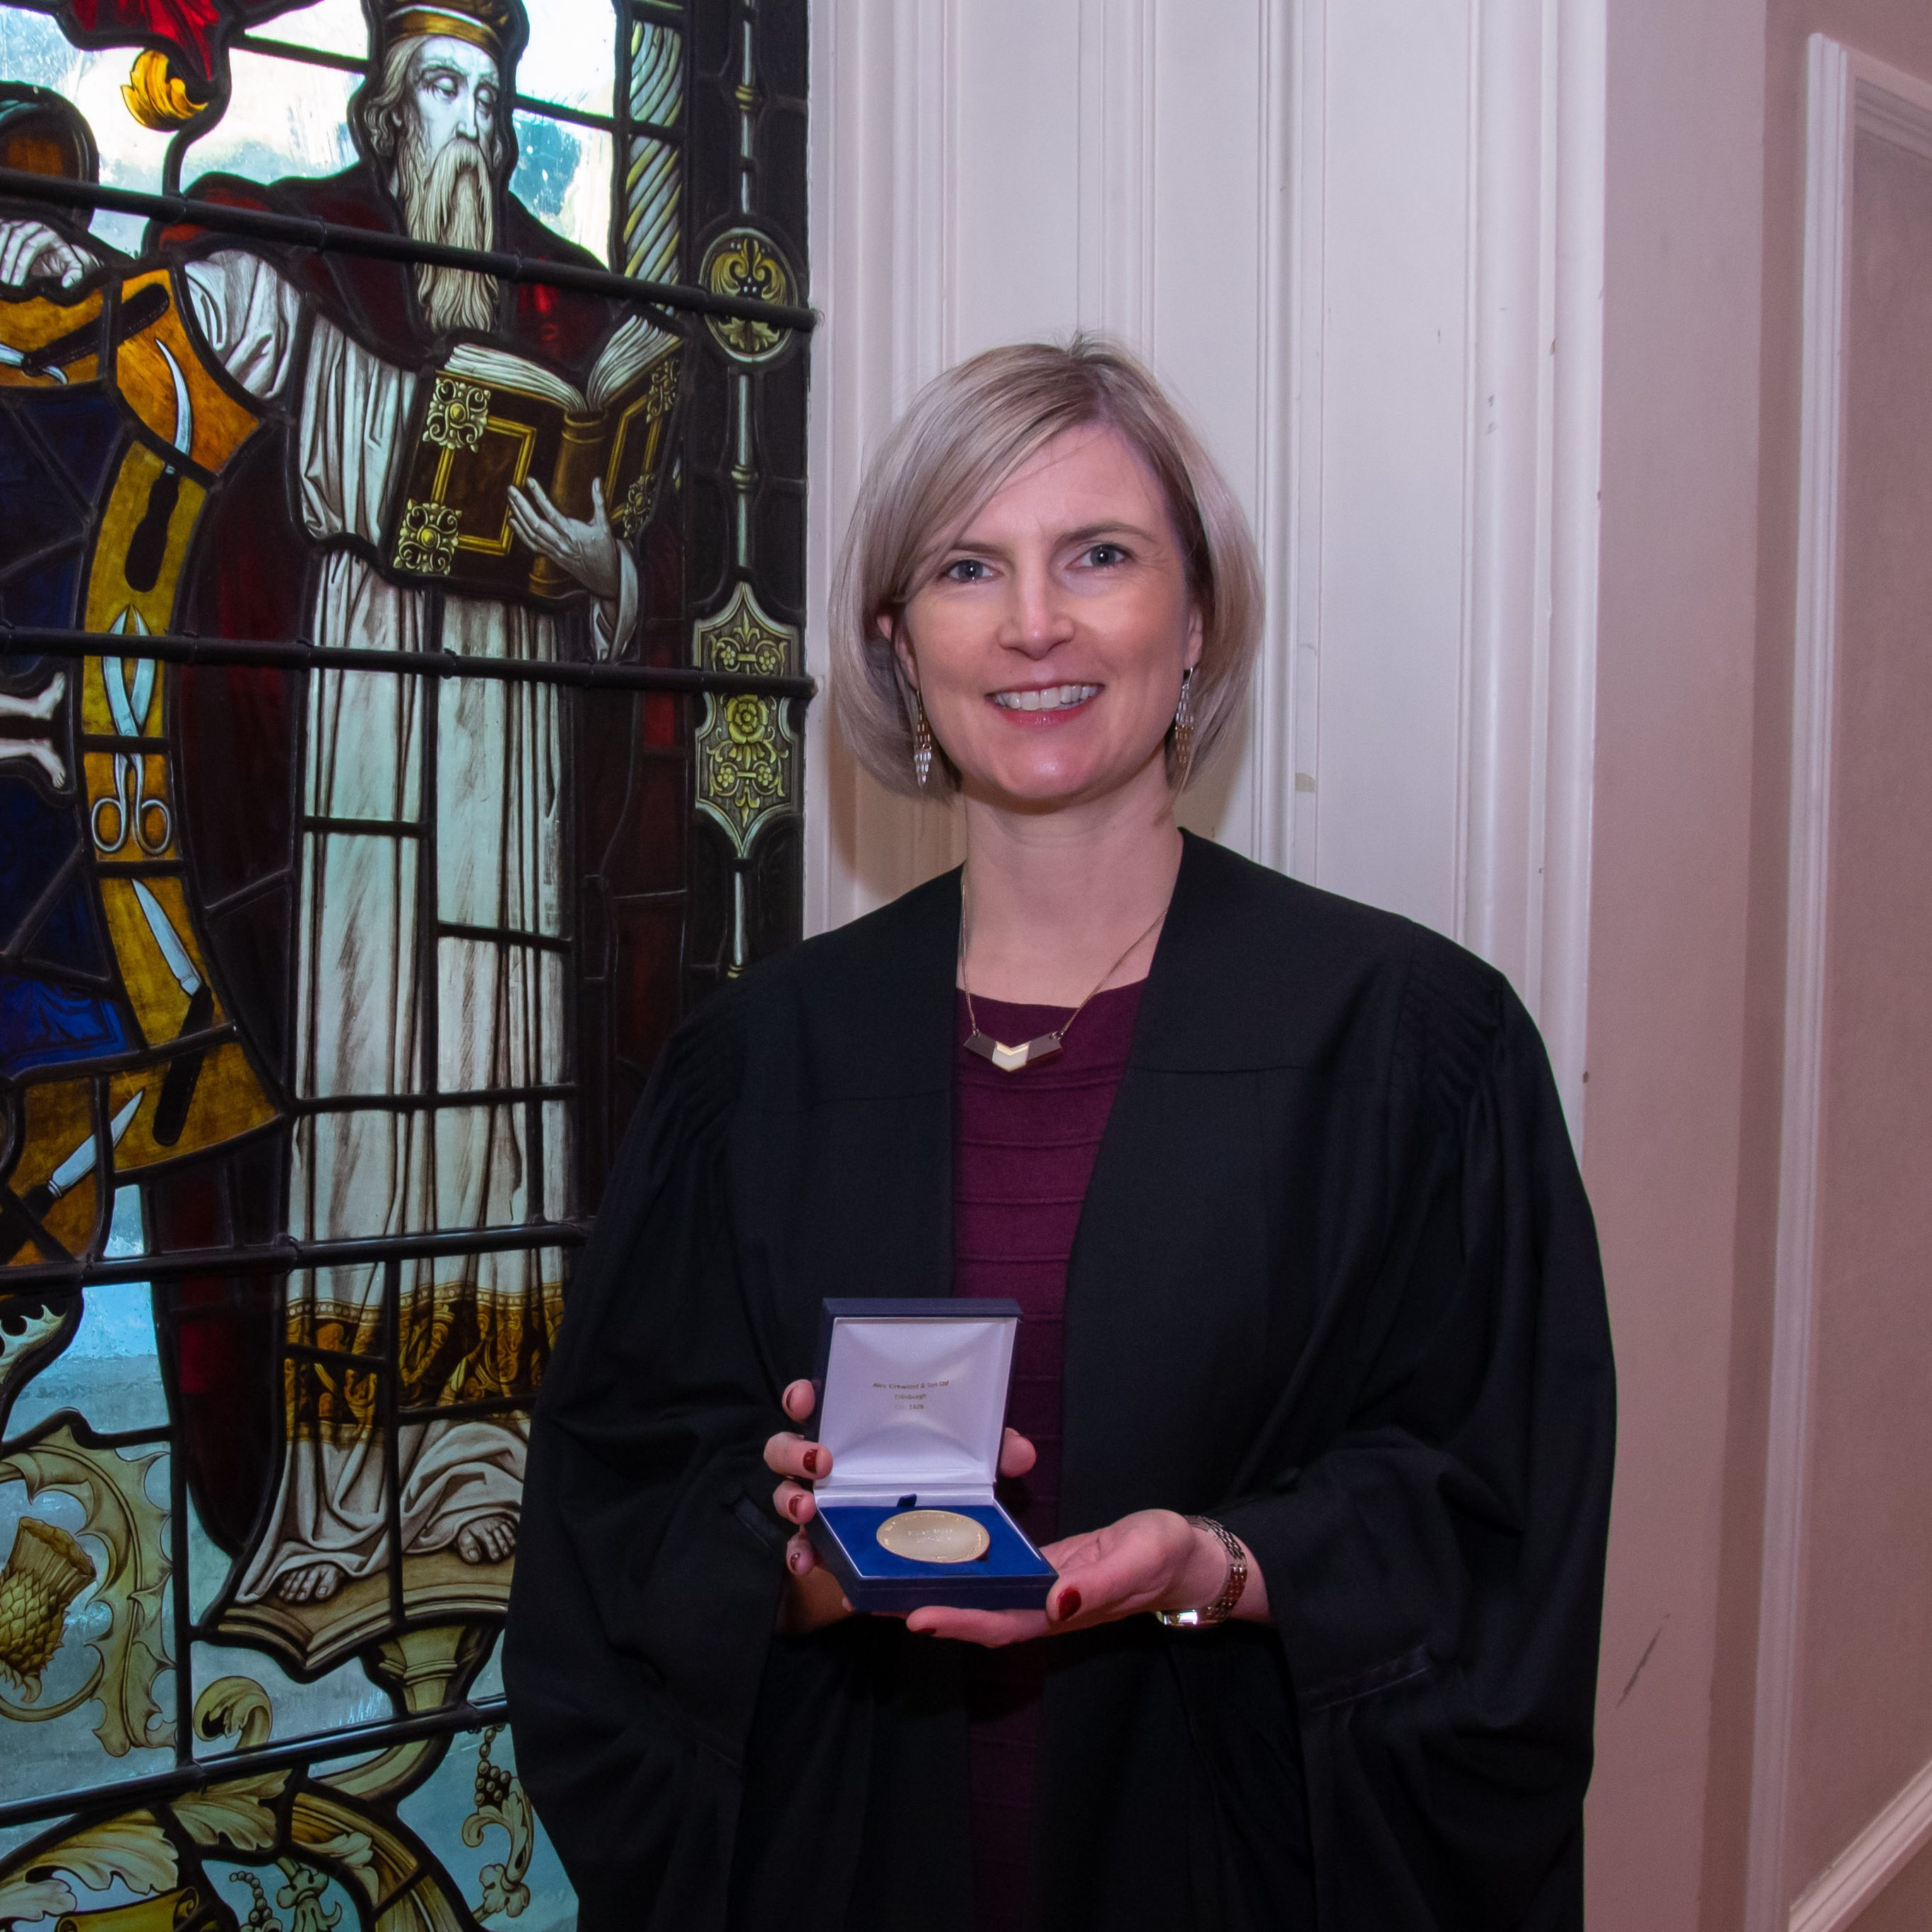 Gillian Bruce awarded medal as part of masters